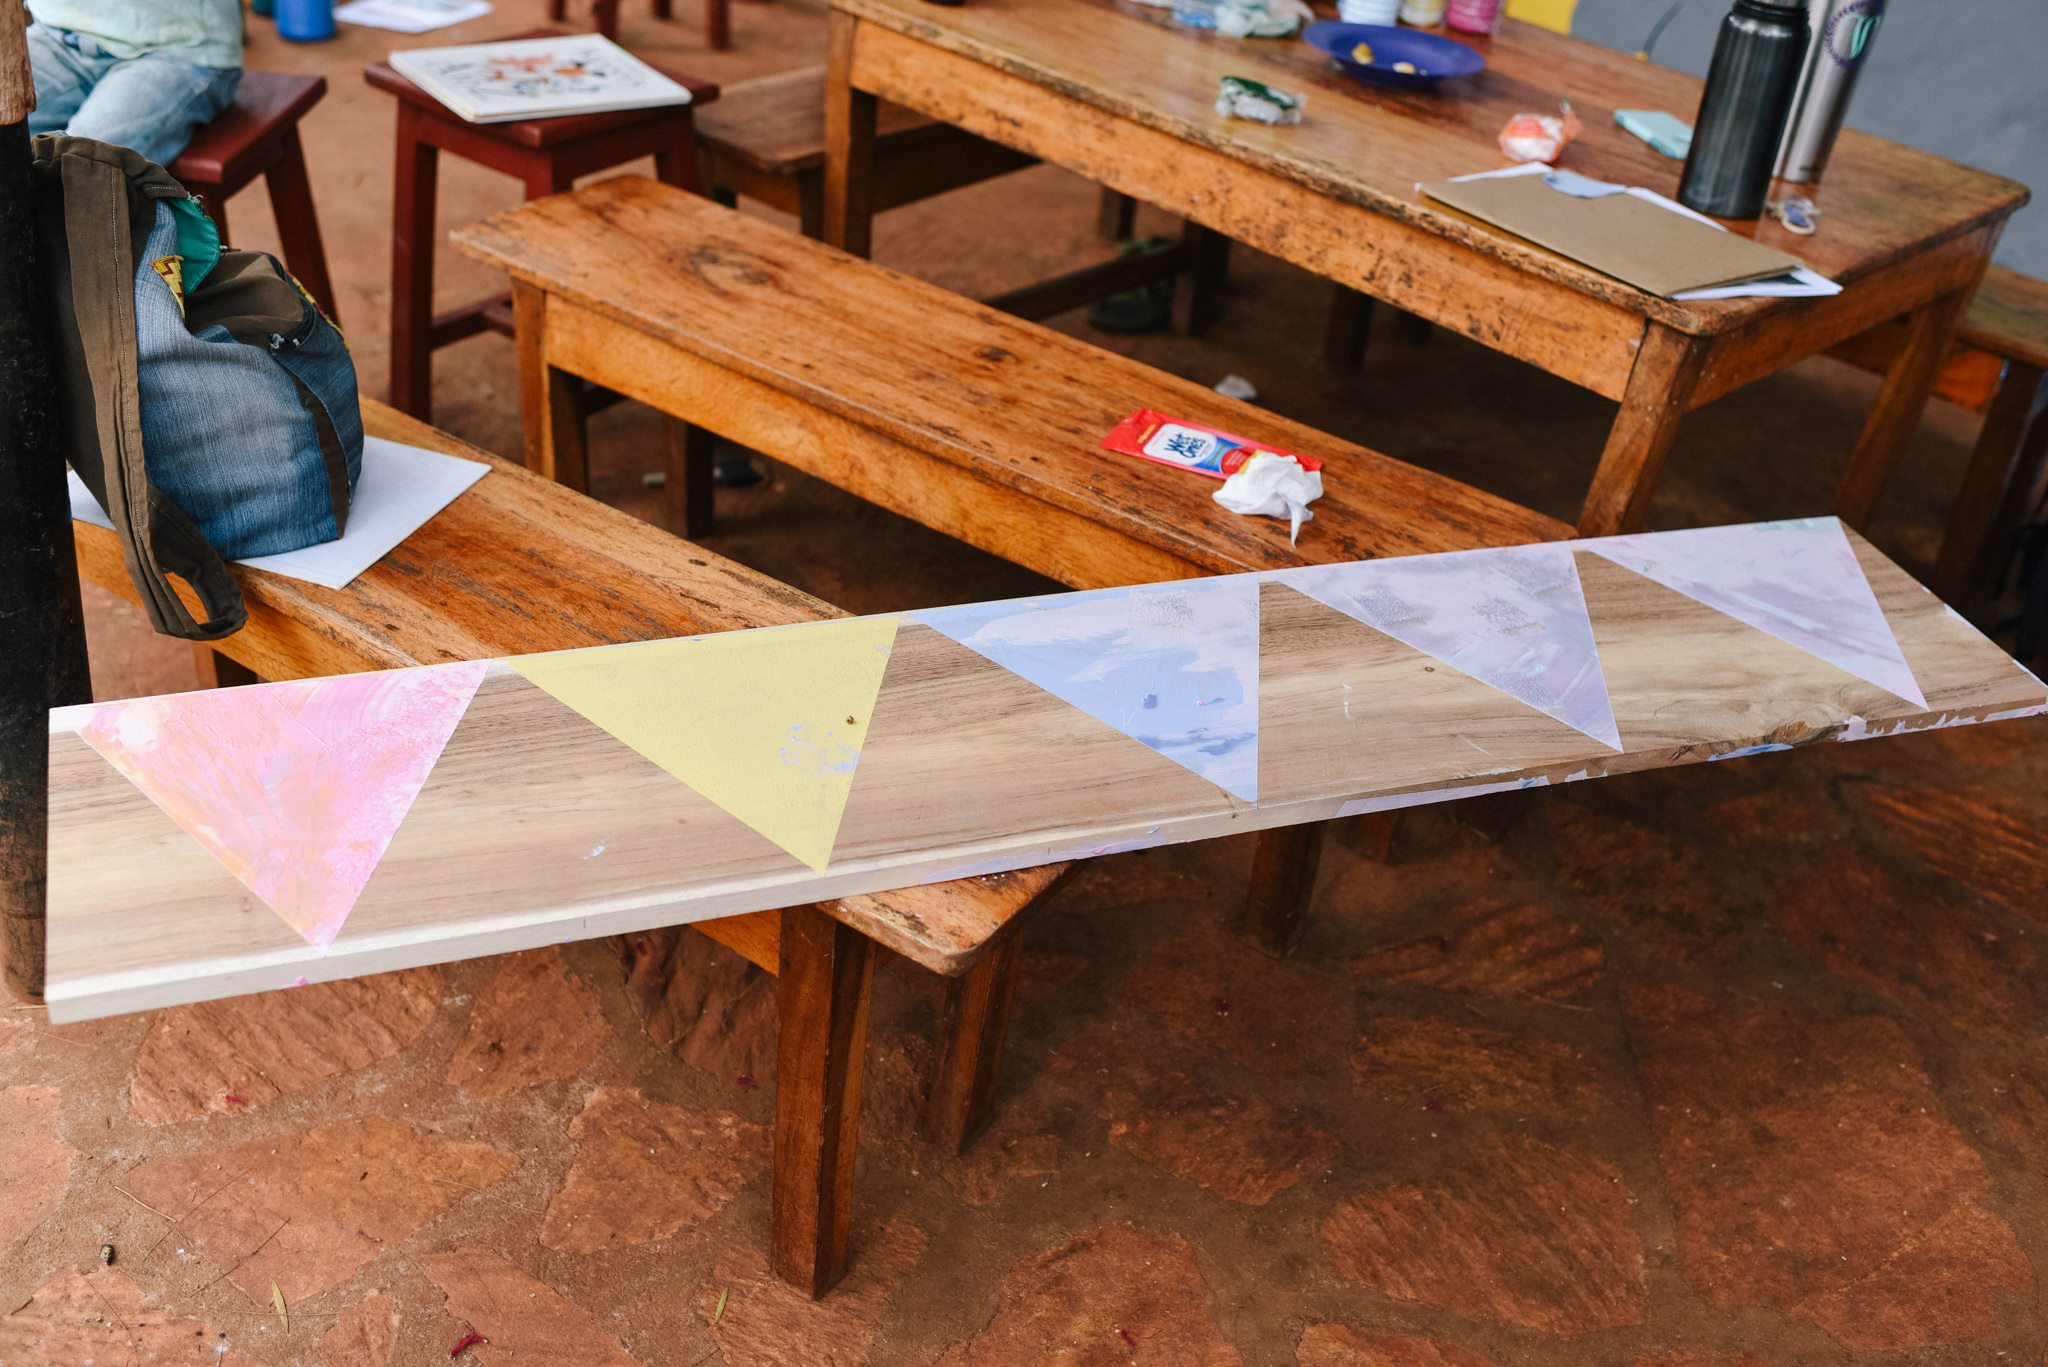 One of the completed panels. Photo credit Ekisa Ministries